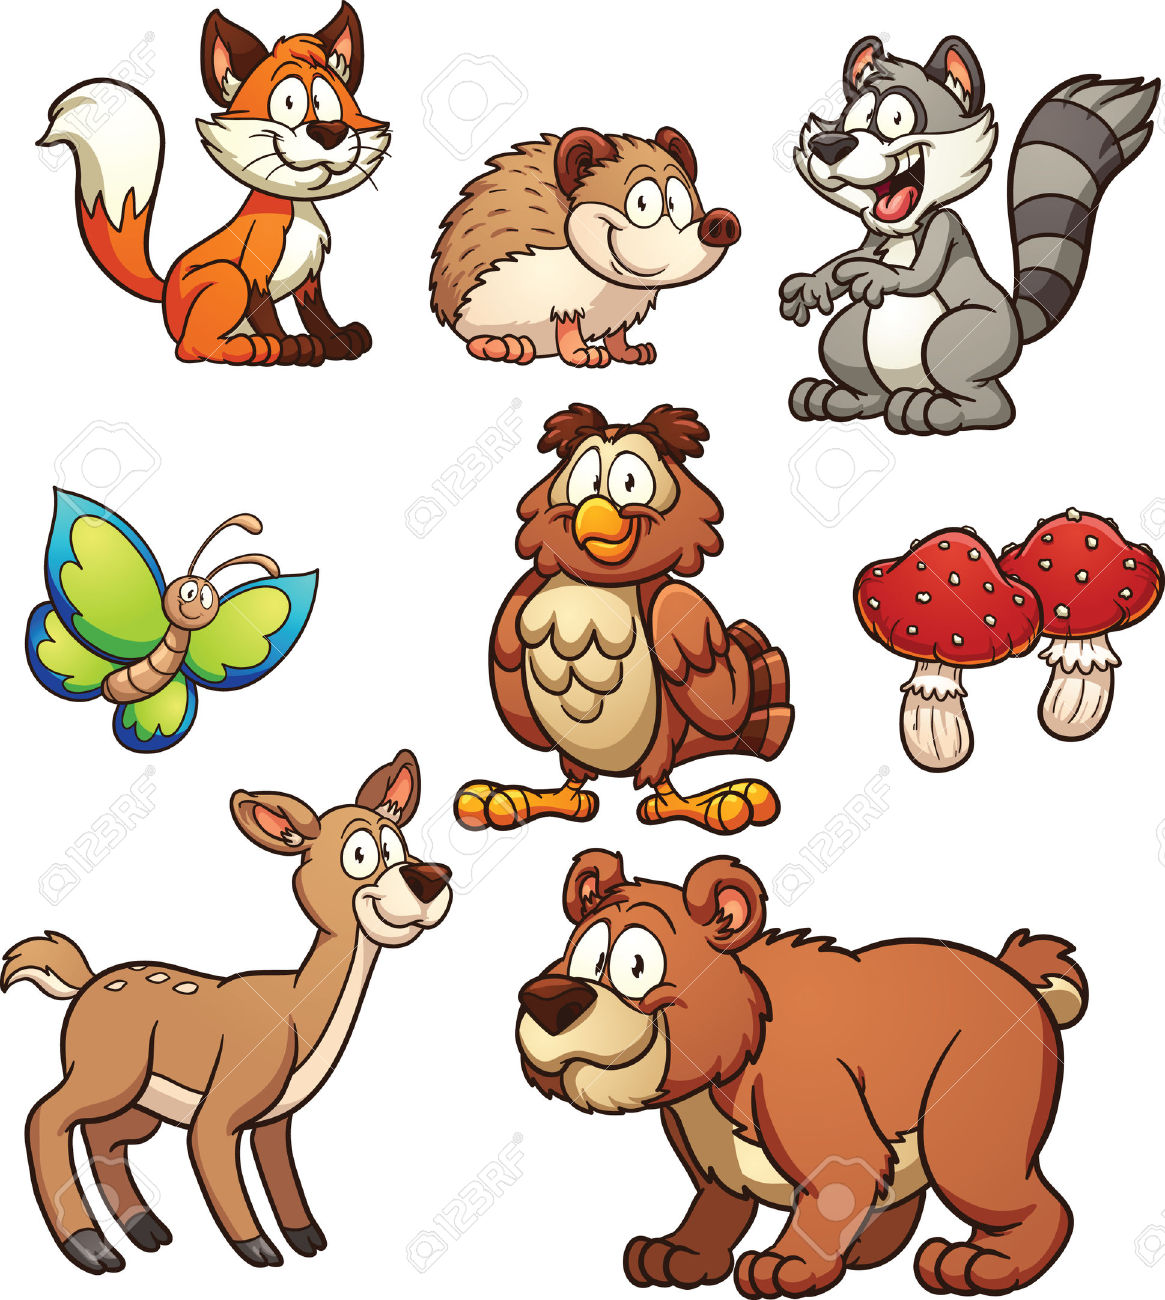 Clipart Tiere Kostenlos Tiere Clipart 1 Clipart Station